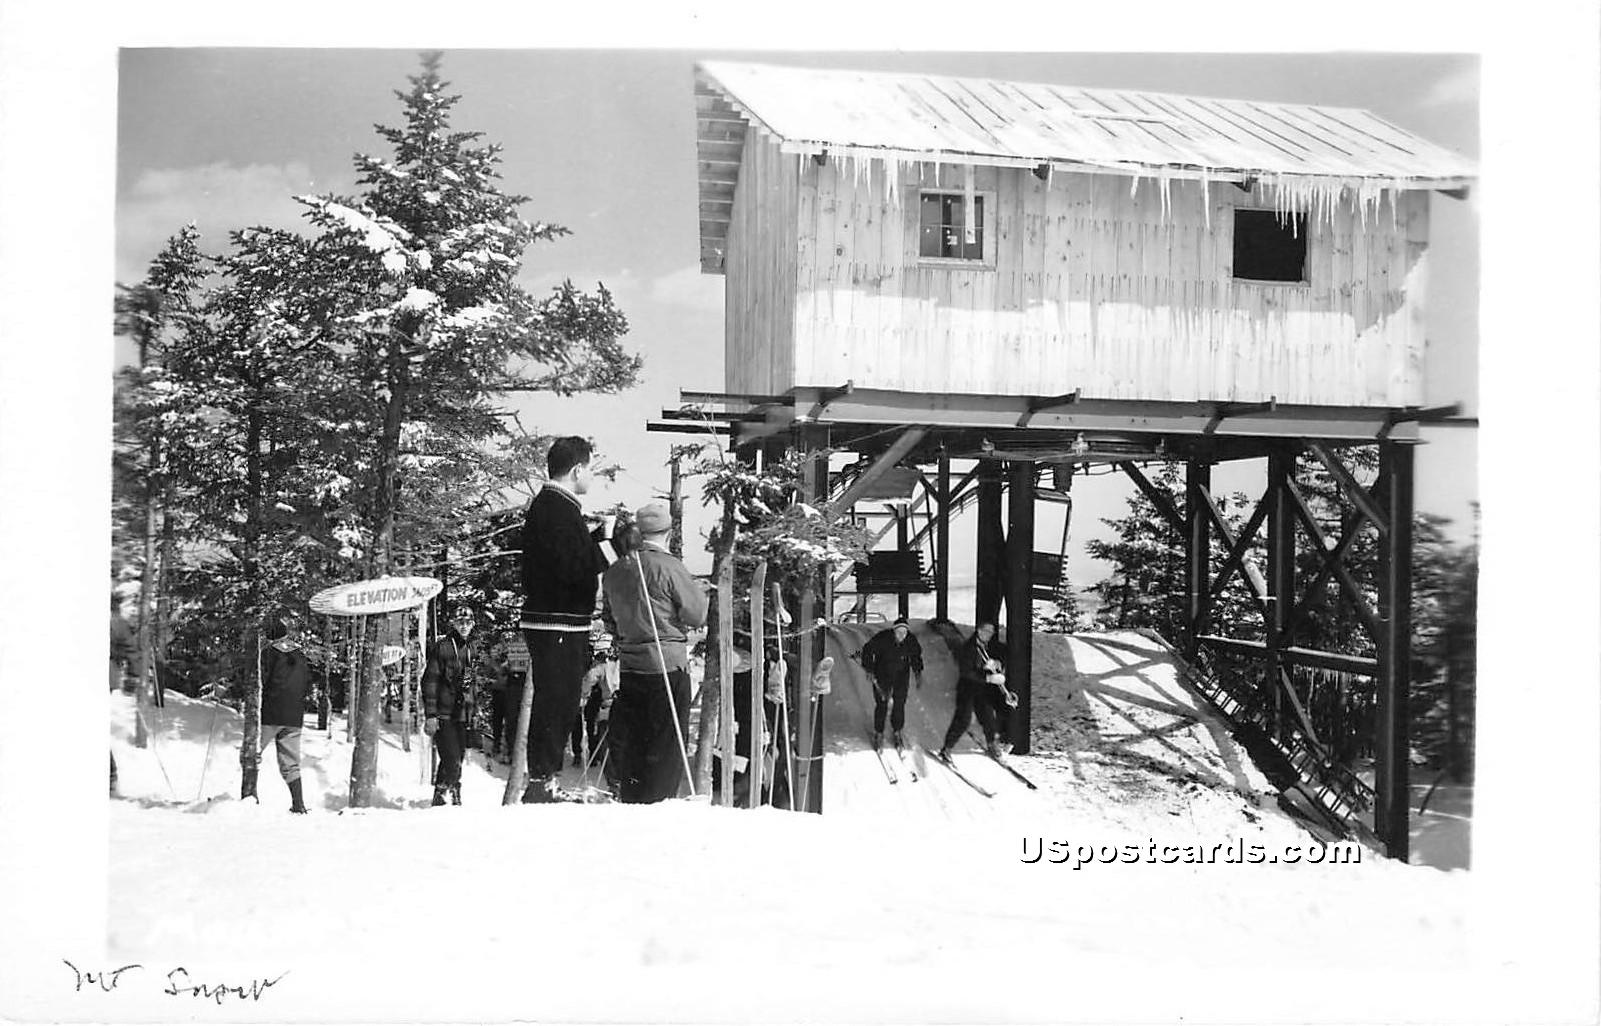 Ski Lift - Mount Snow, Vermont VT Postcard